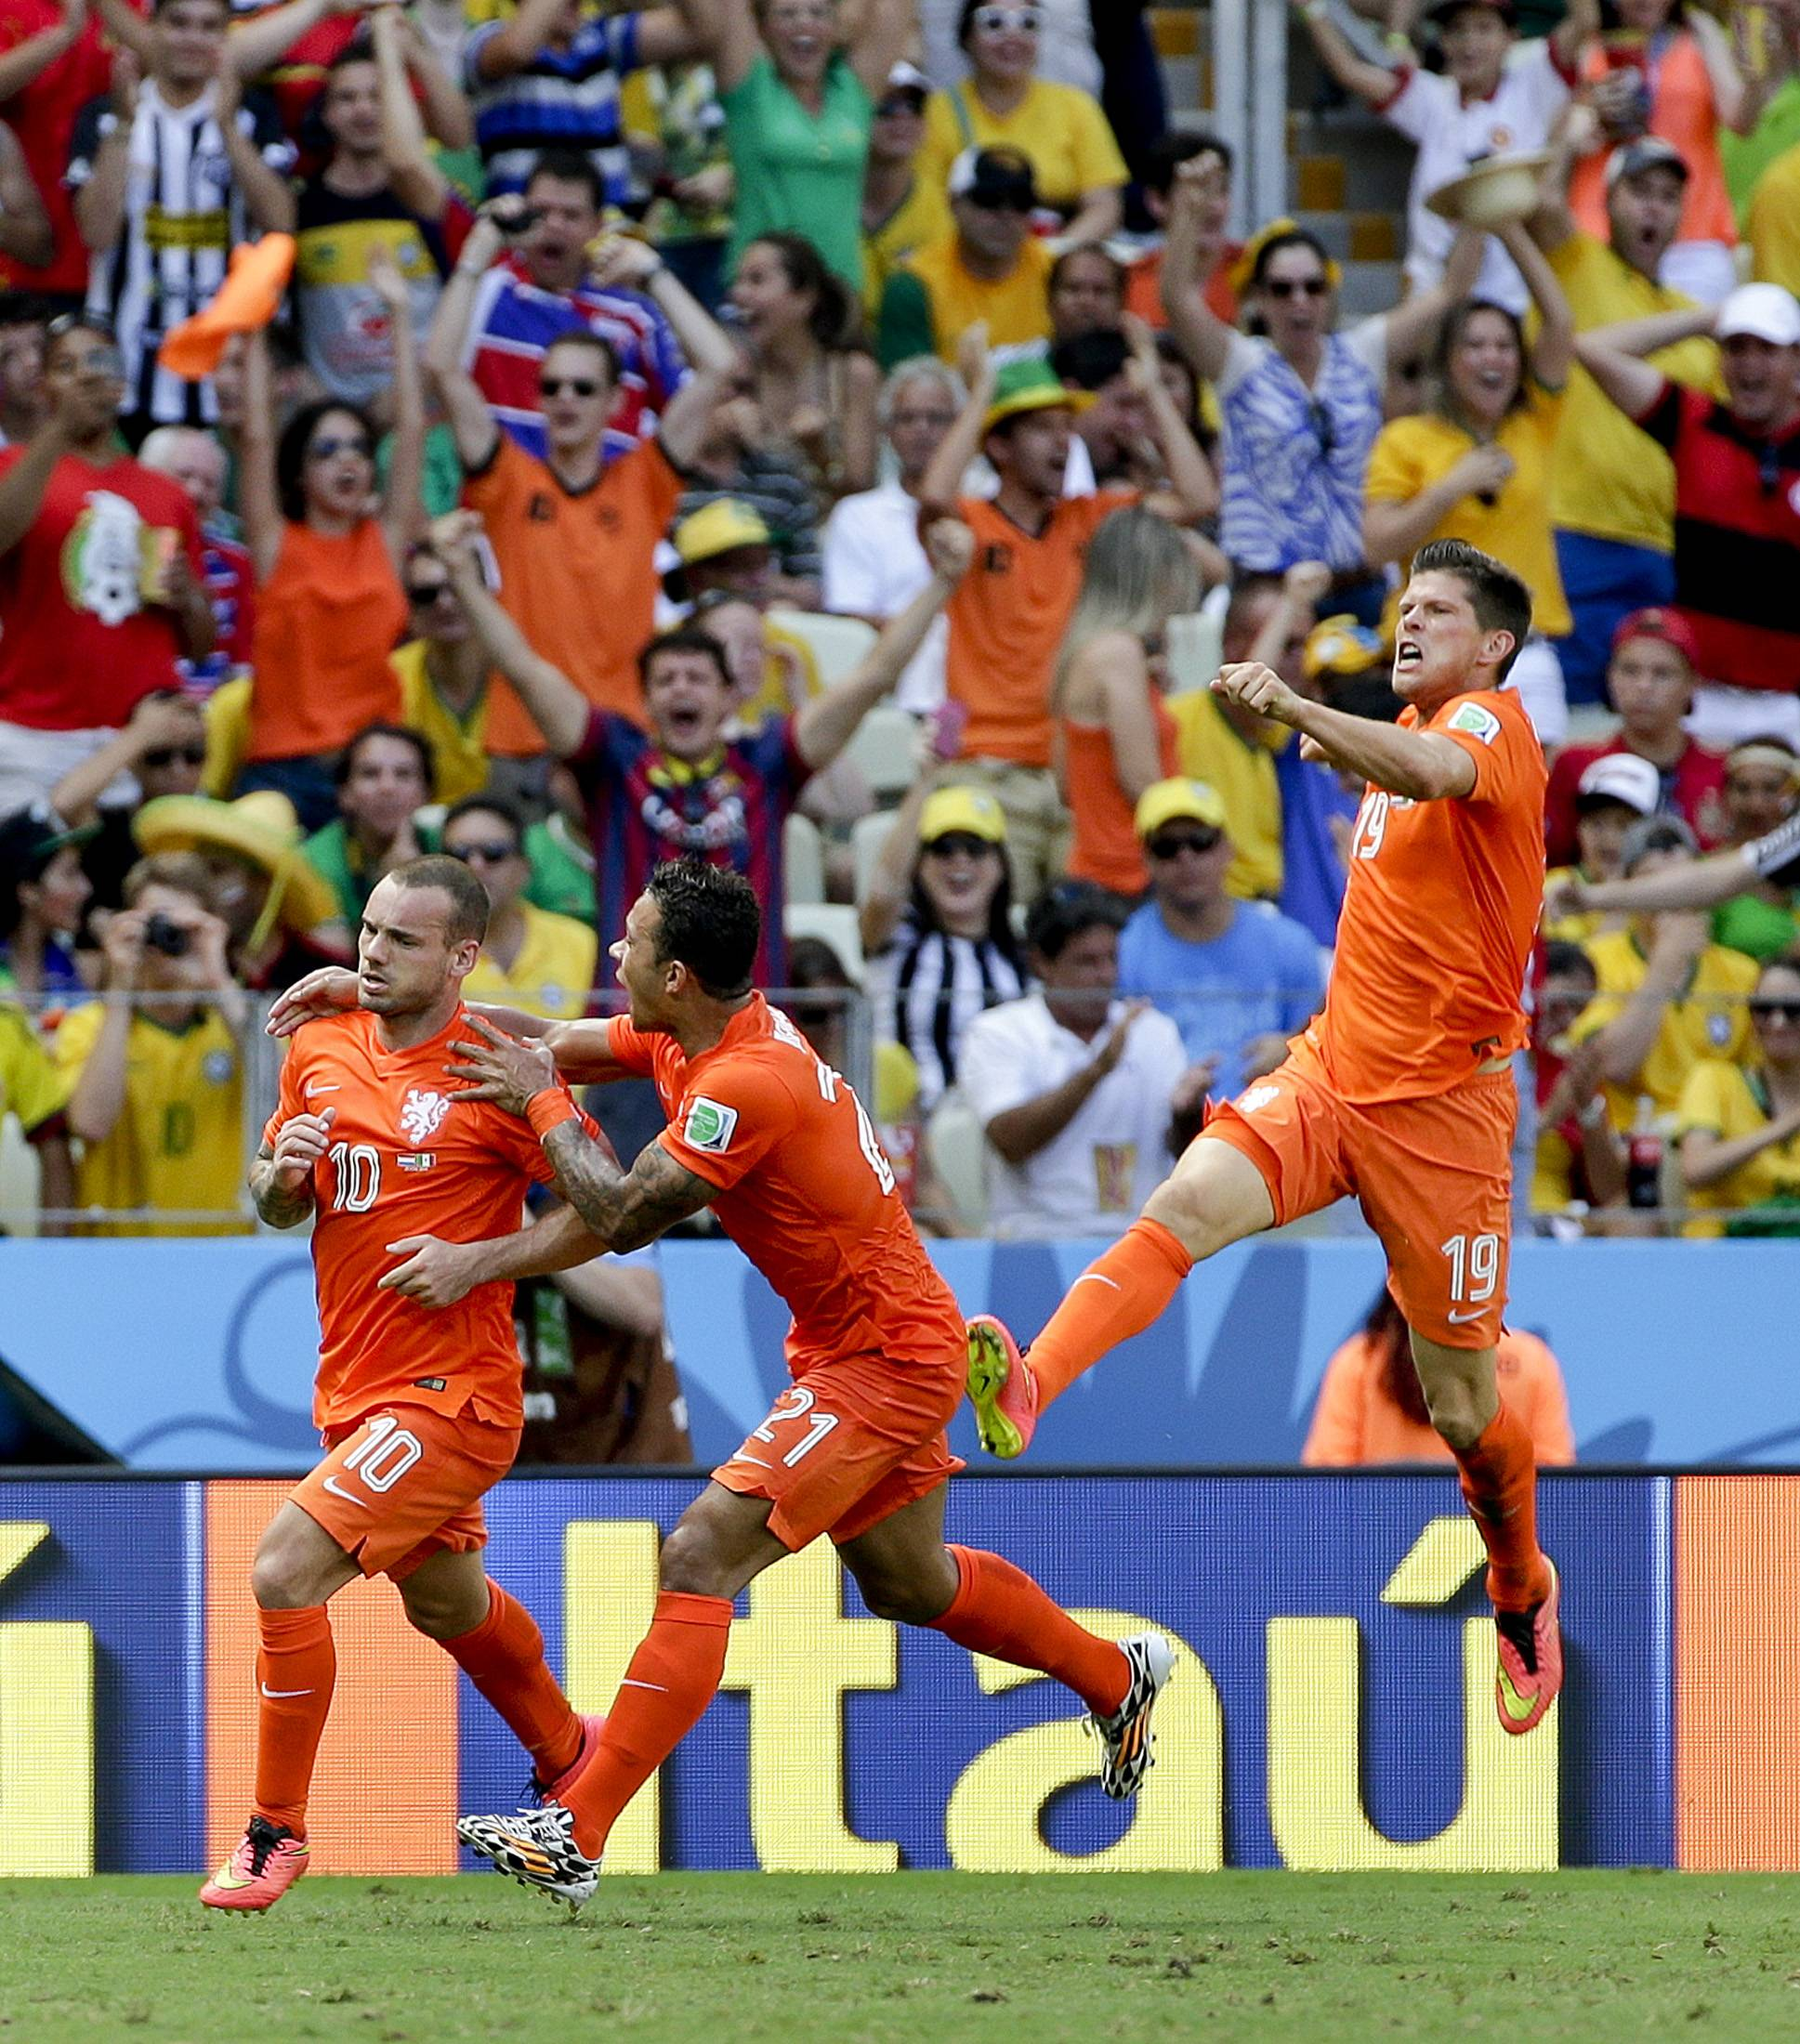 The Netherlands' Wesley Sneijder (10) celebrates with teammates Memphis Depay and Klaas-Jan Huntelaar (19) after scoring his side's first goal during the World Cup round of 16 soccer match between the Netherlands and Mexico at the Arena Castelao in Fortaleza, Brazil, Sunday, June 29, 2014.